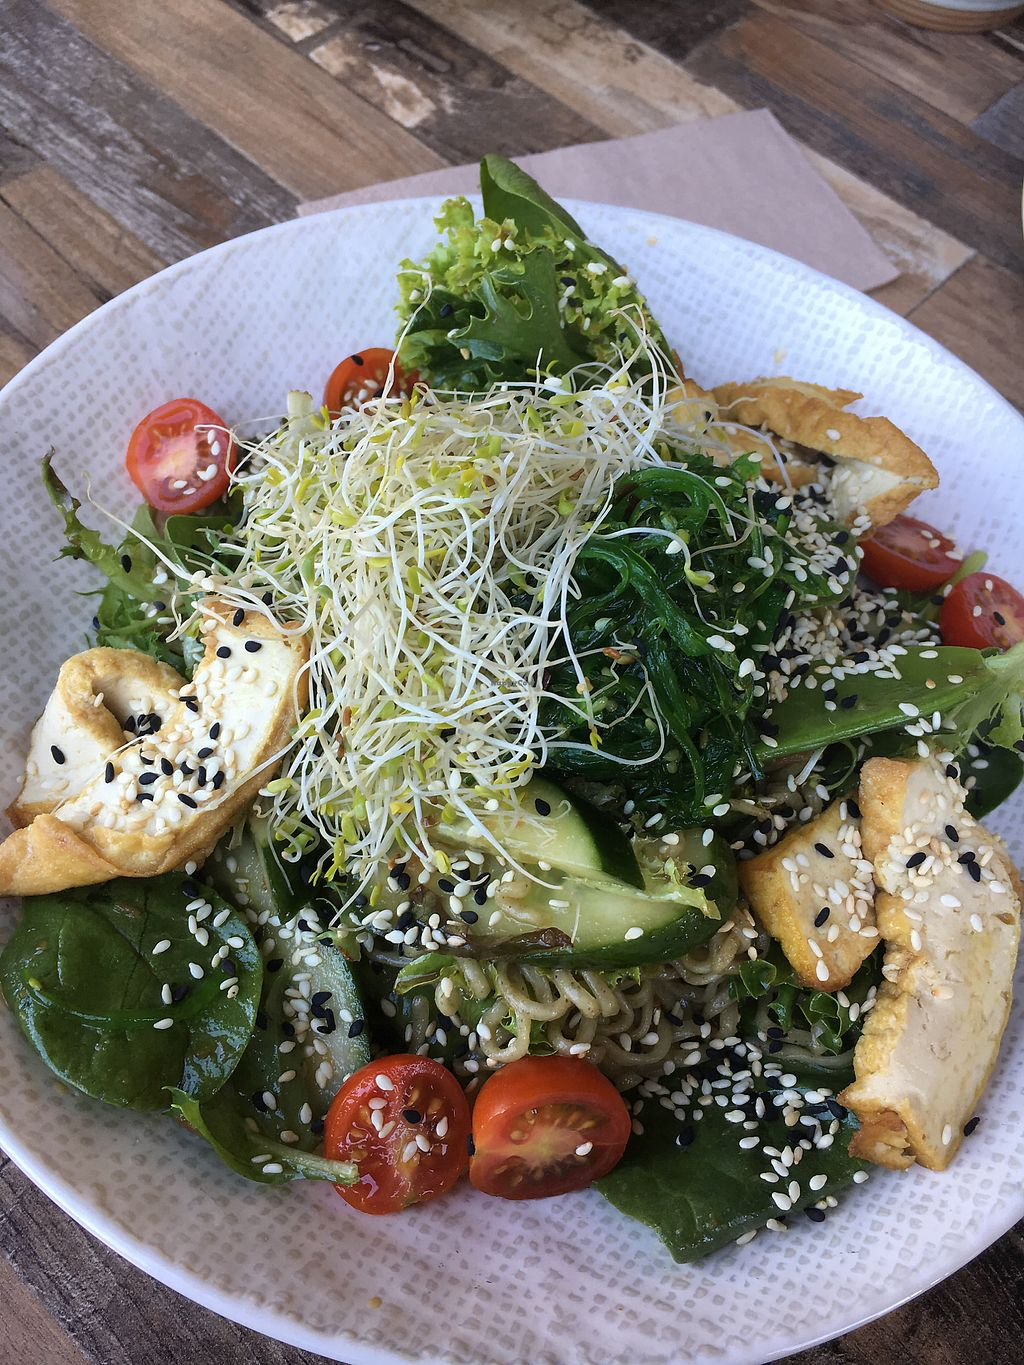 """Photo of Olivia Spring Cafe  by <a href=""""/members/profile/VeganBec"""">VeganBec</a> <br/>Umami Egyptian Bowl <br/> January 17, 2018  - <a href='/contact/abuse/image/94297/347415'>Report</a>"""